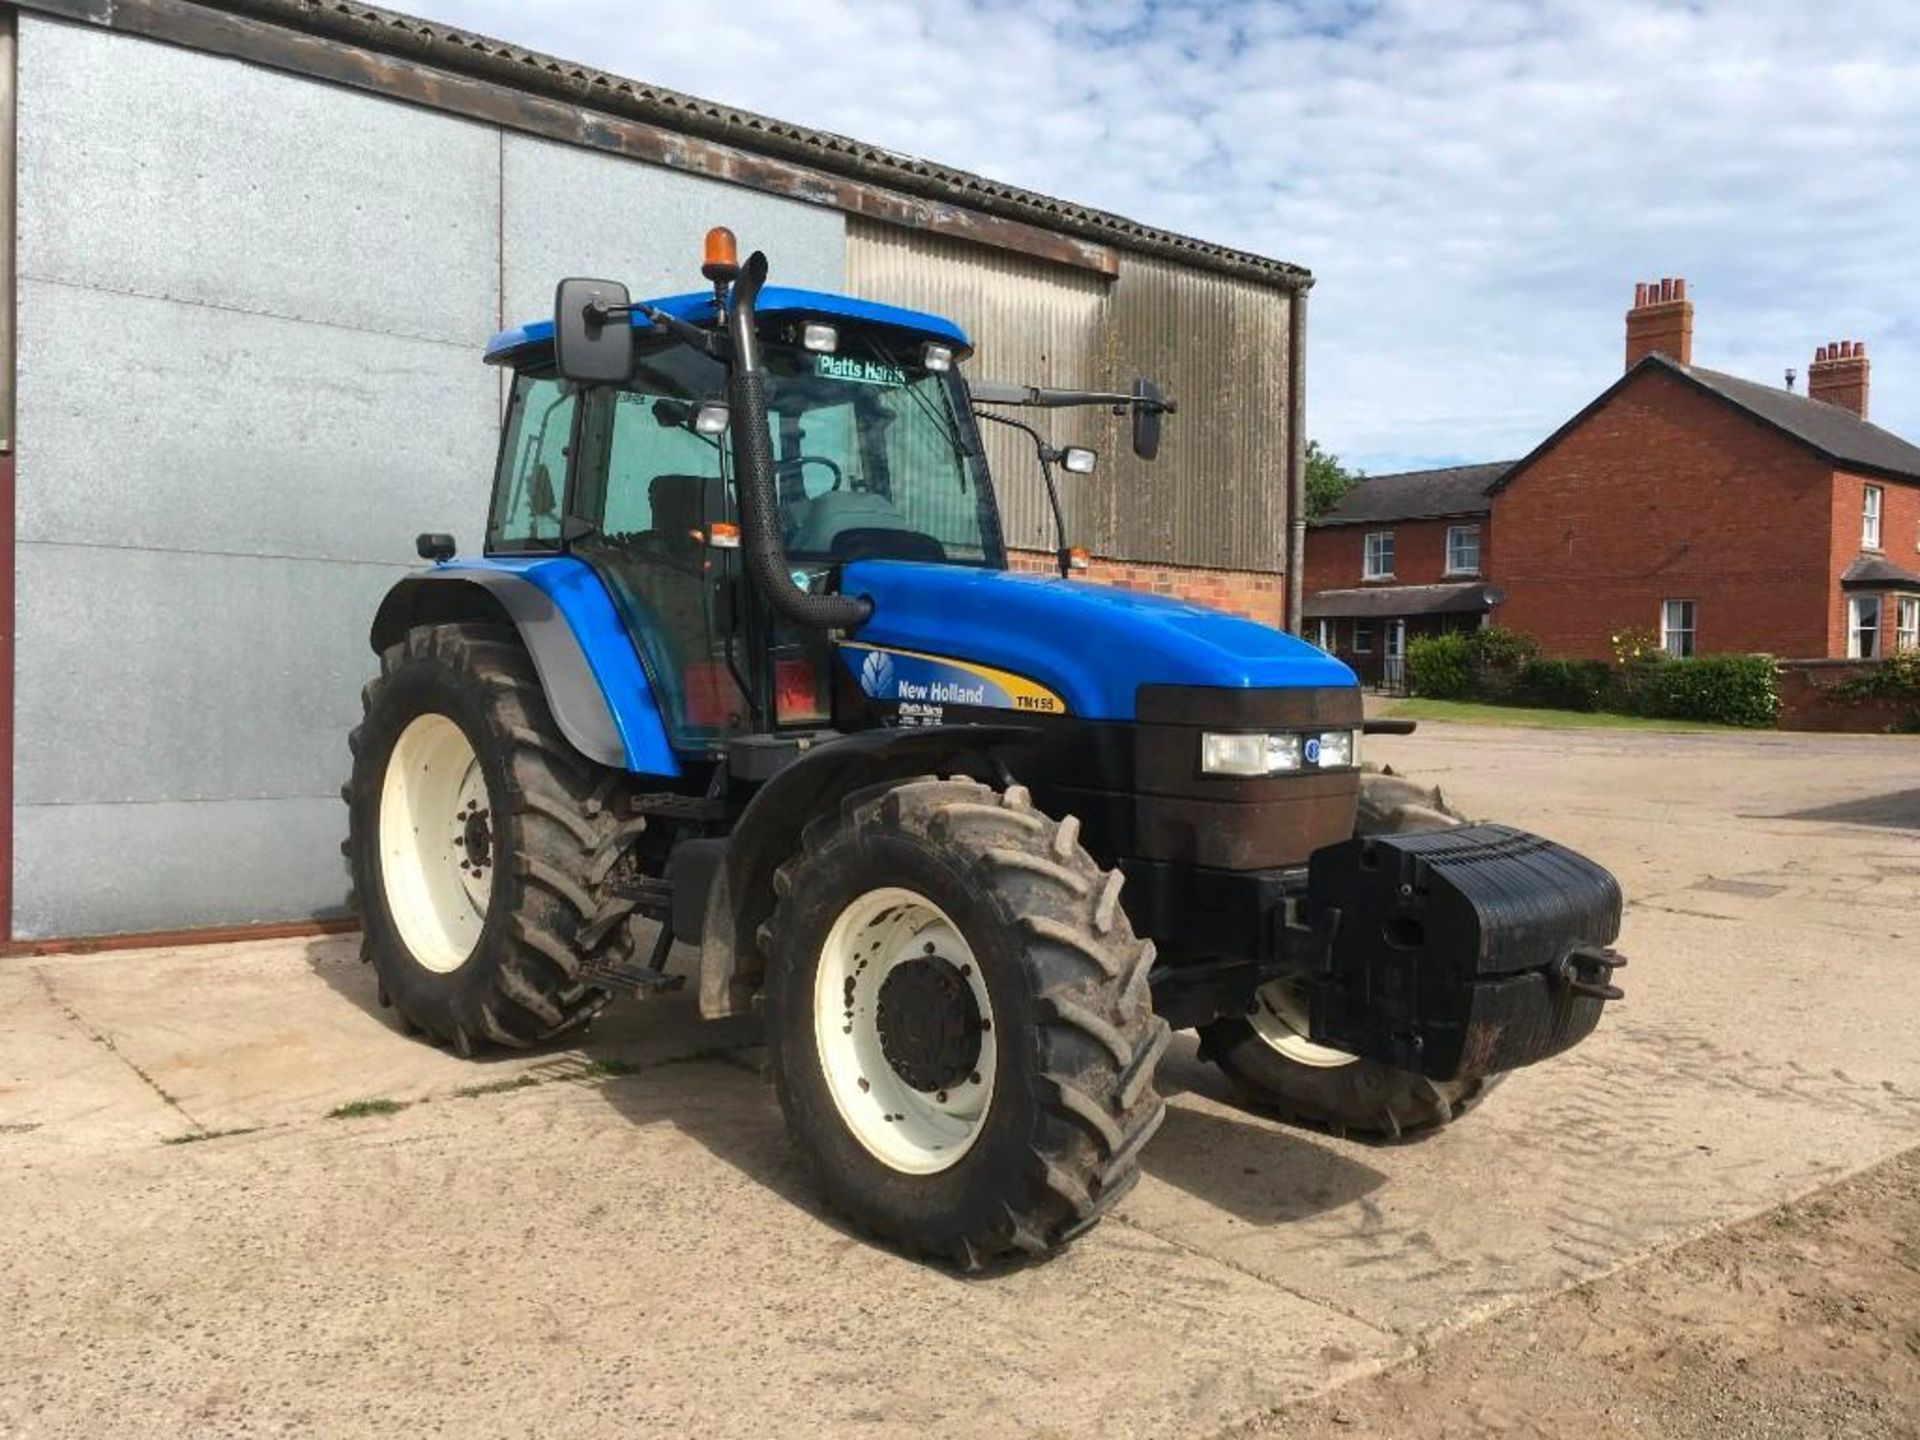 2007 New Holland TM155 tractor with range command gear box, 4 spool valves, push out pick up hitch, - Image 4 of 12